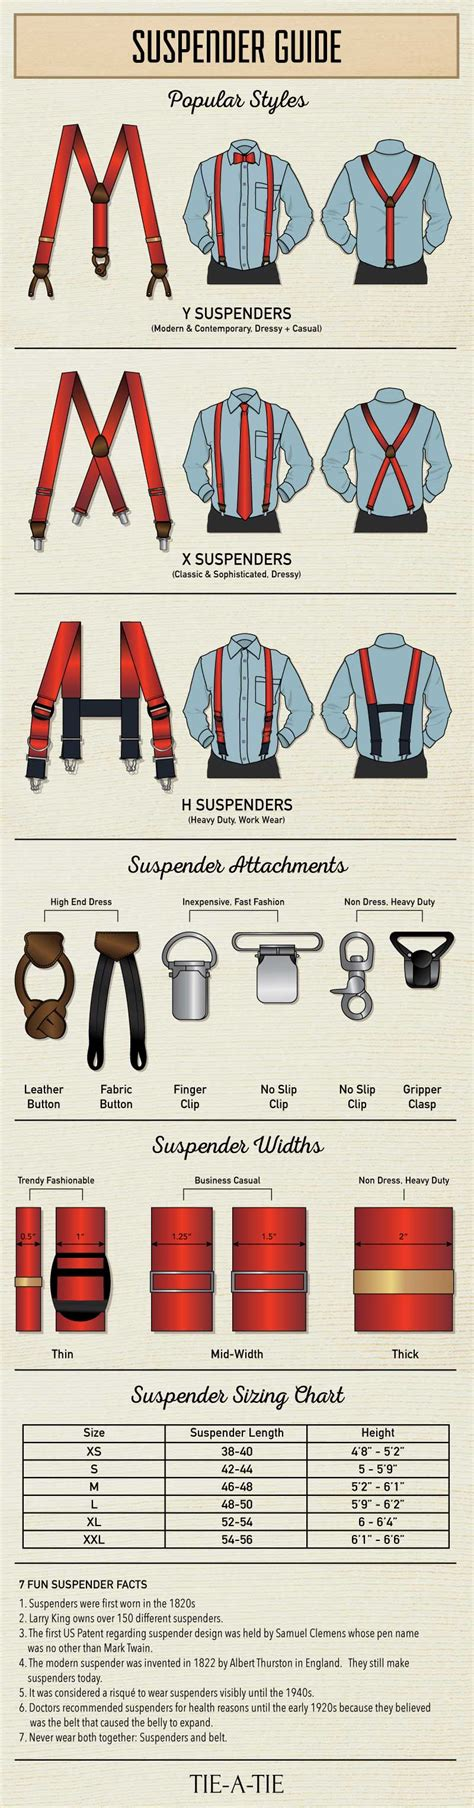 how to a guide suspender guide how to wear suspenders tie a tie net